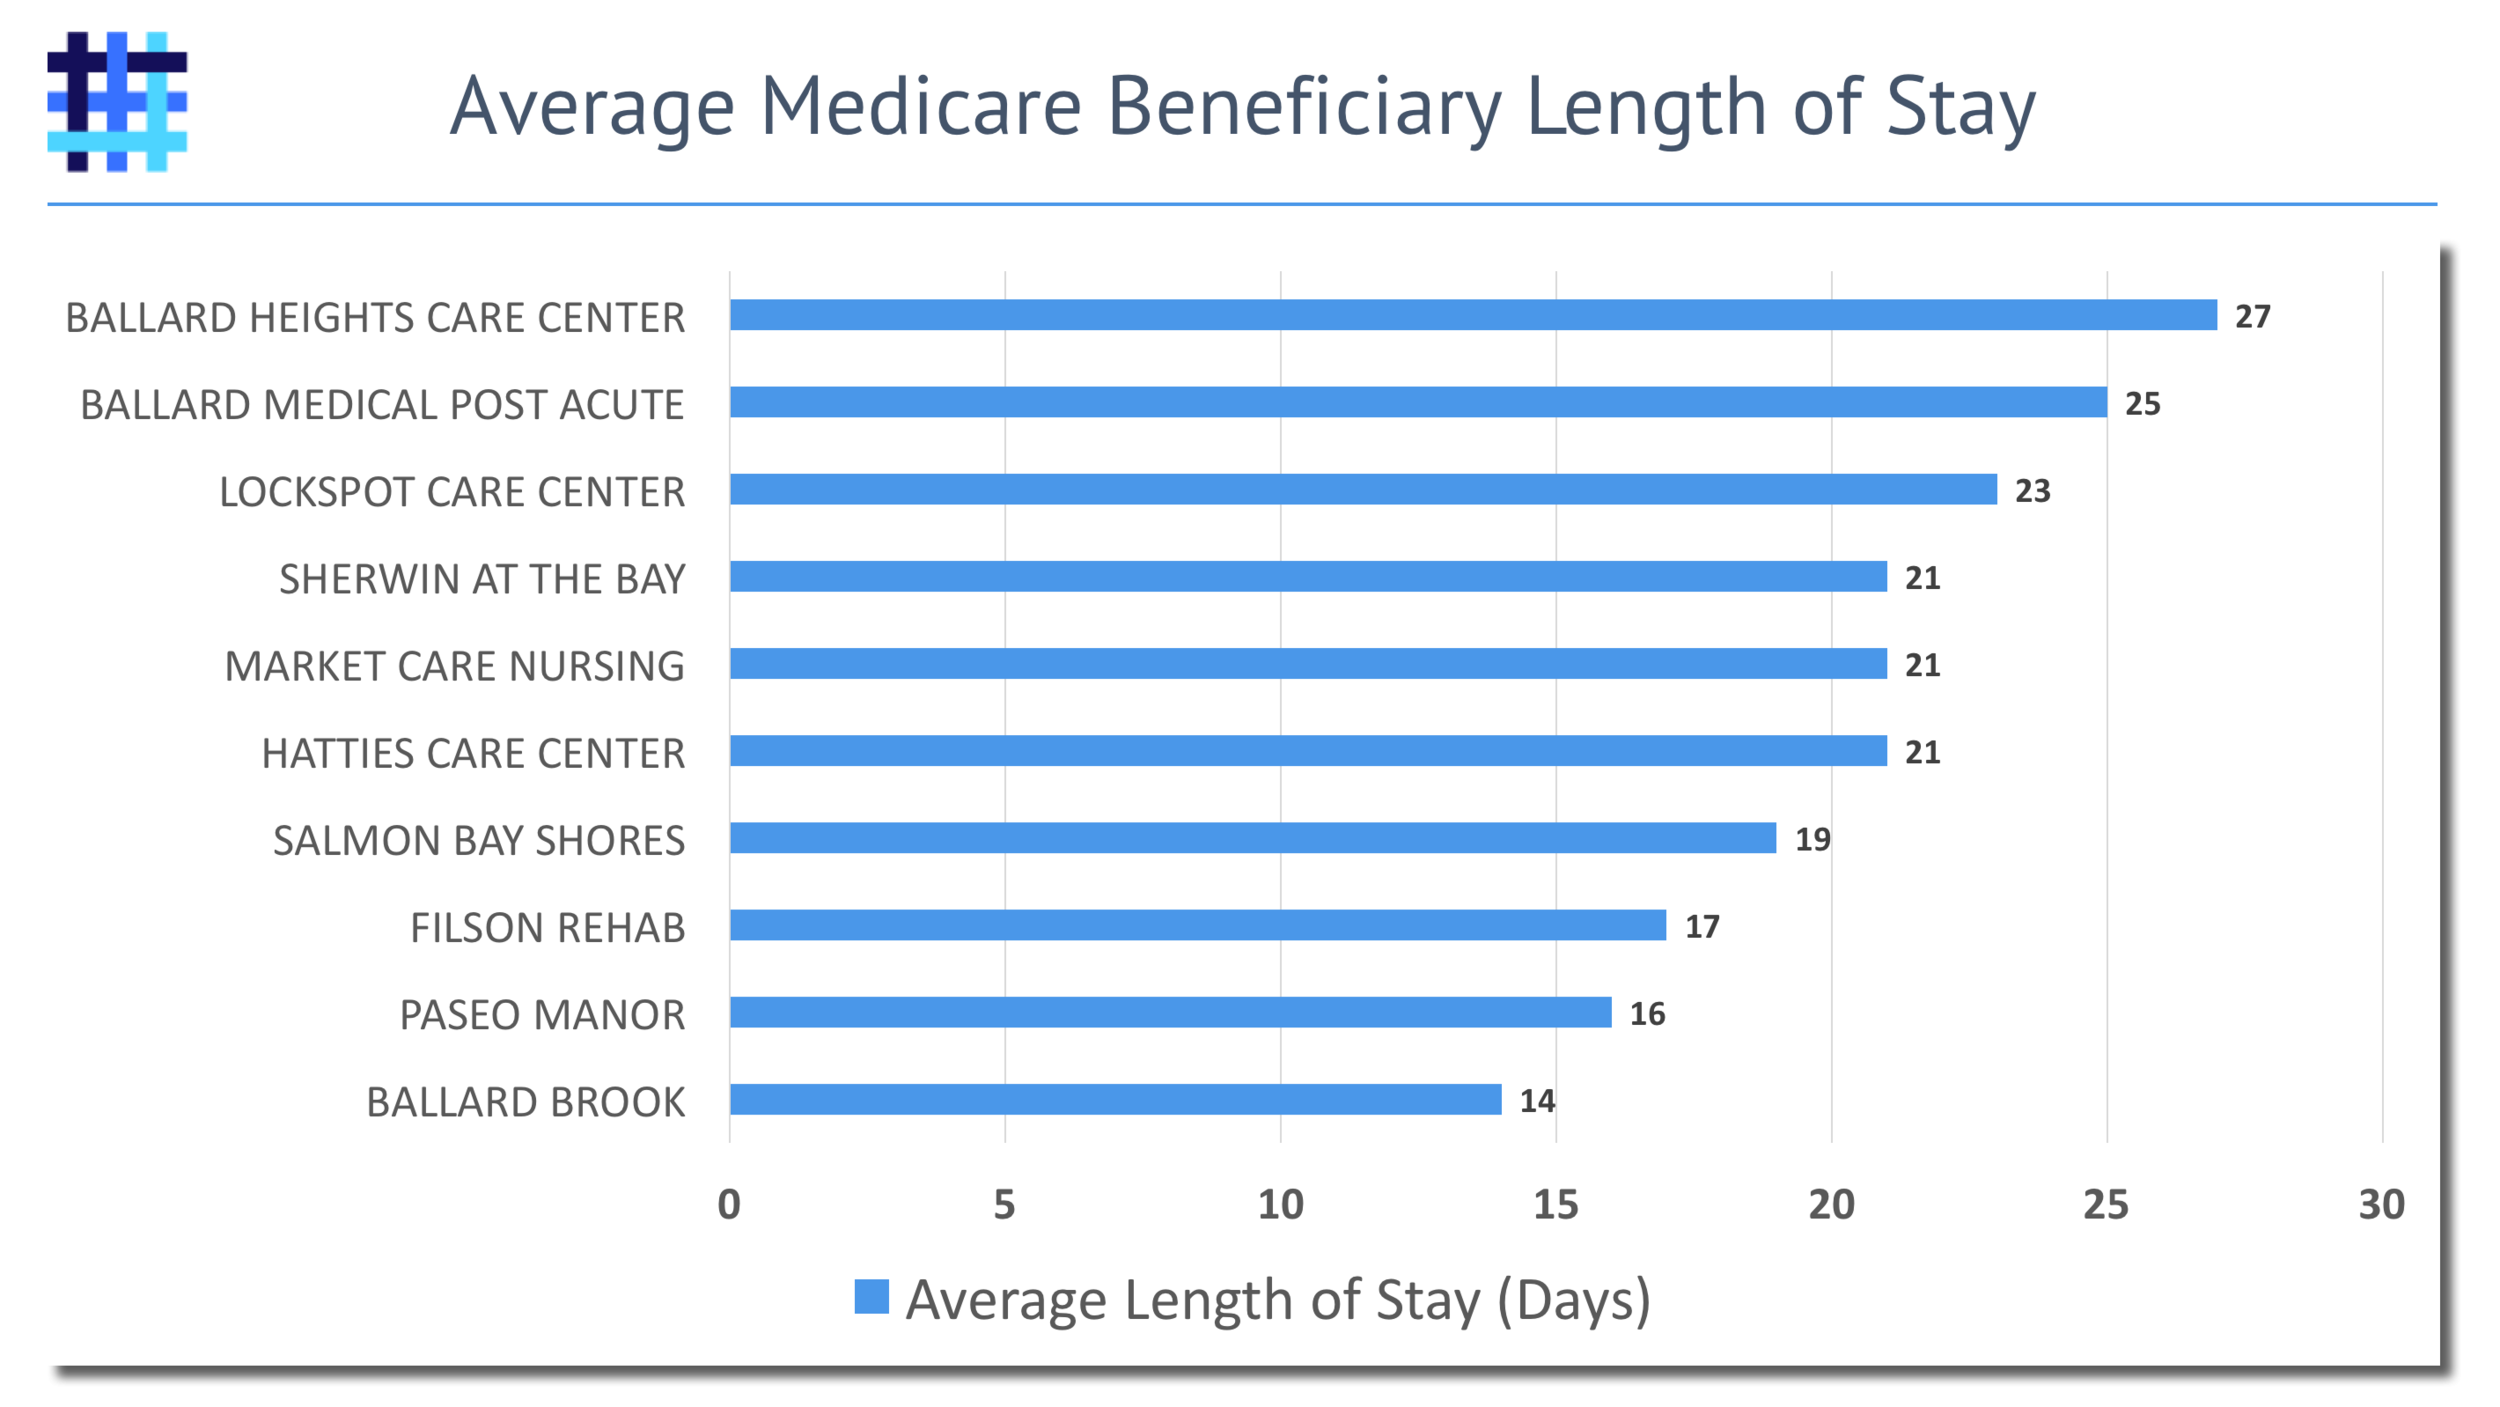 Nursing Home and Skilled Nursing Facility Average Length of Stay Per Medicare Beneficiary (MSPB)